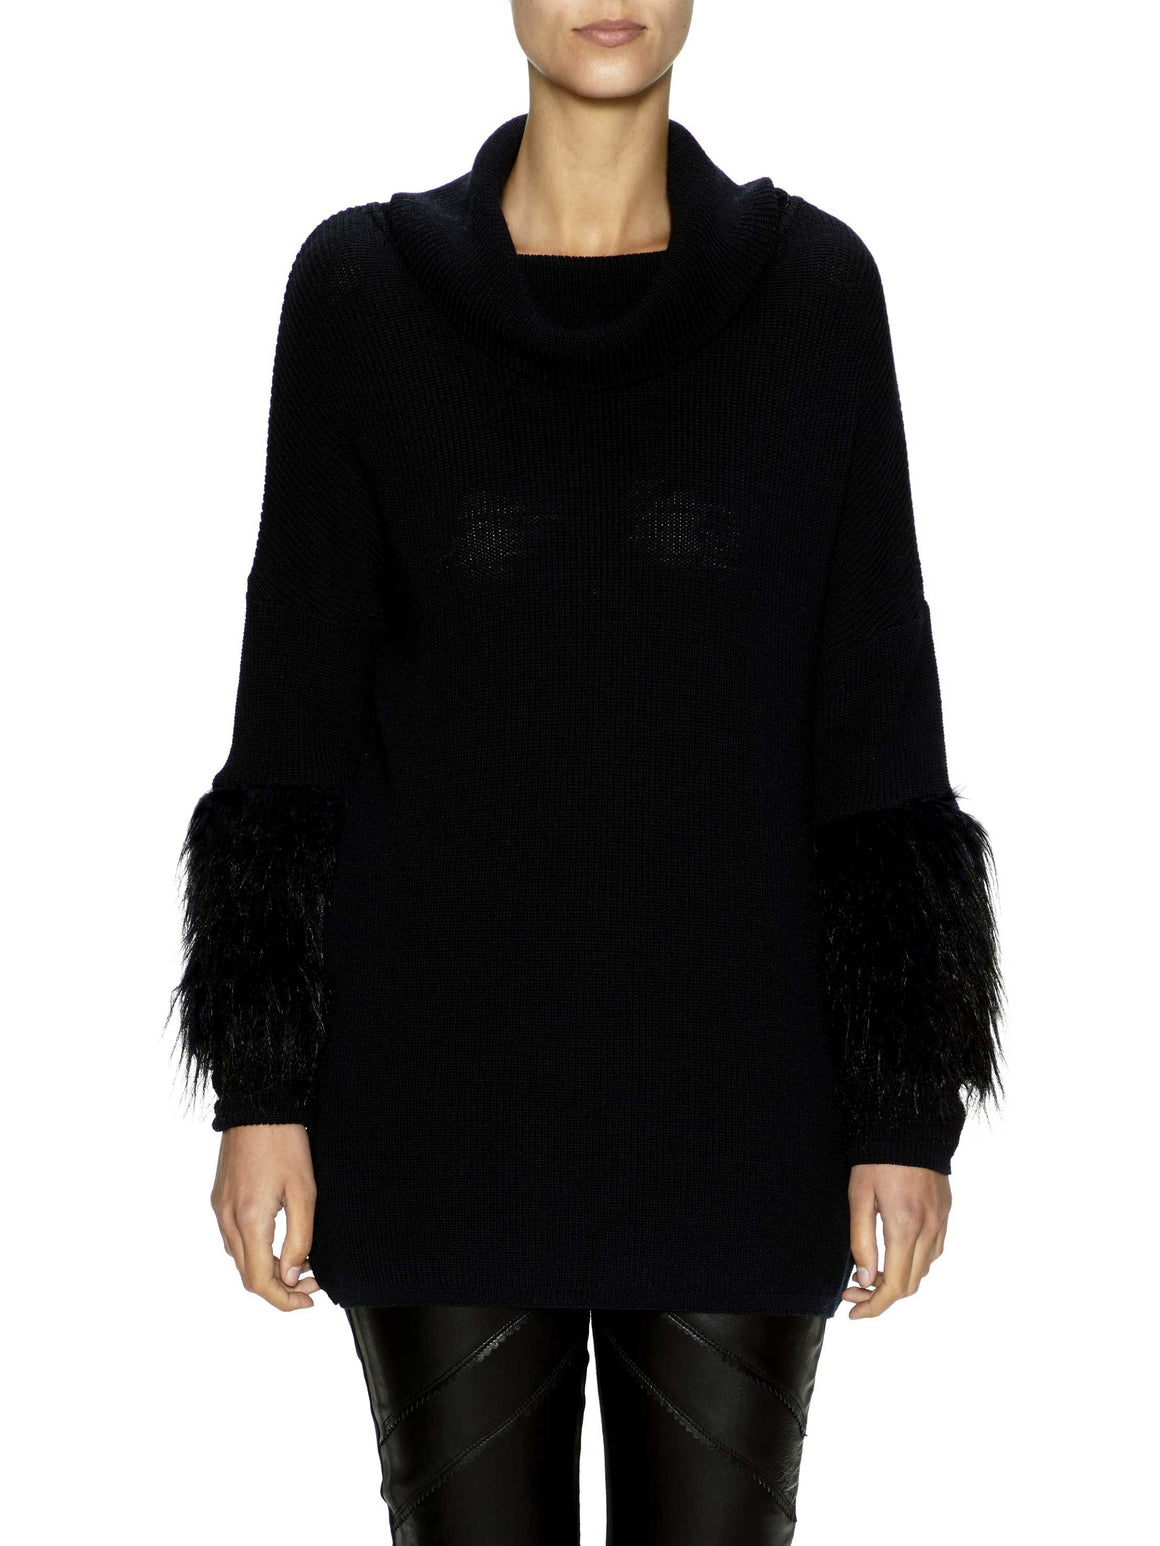 Sabatini Jumper with Faux Fur Sleeve - Black